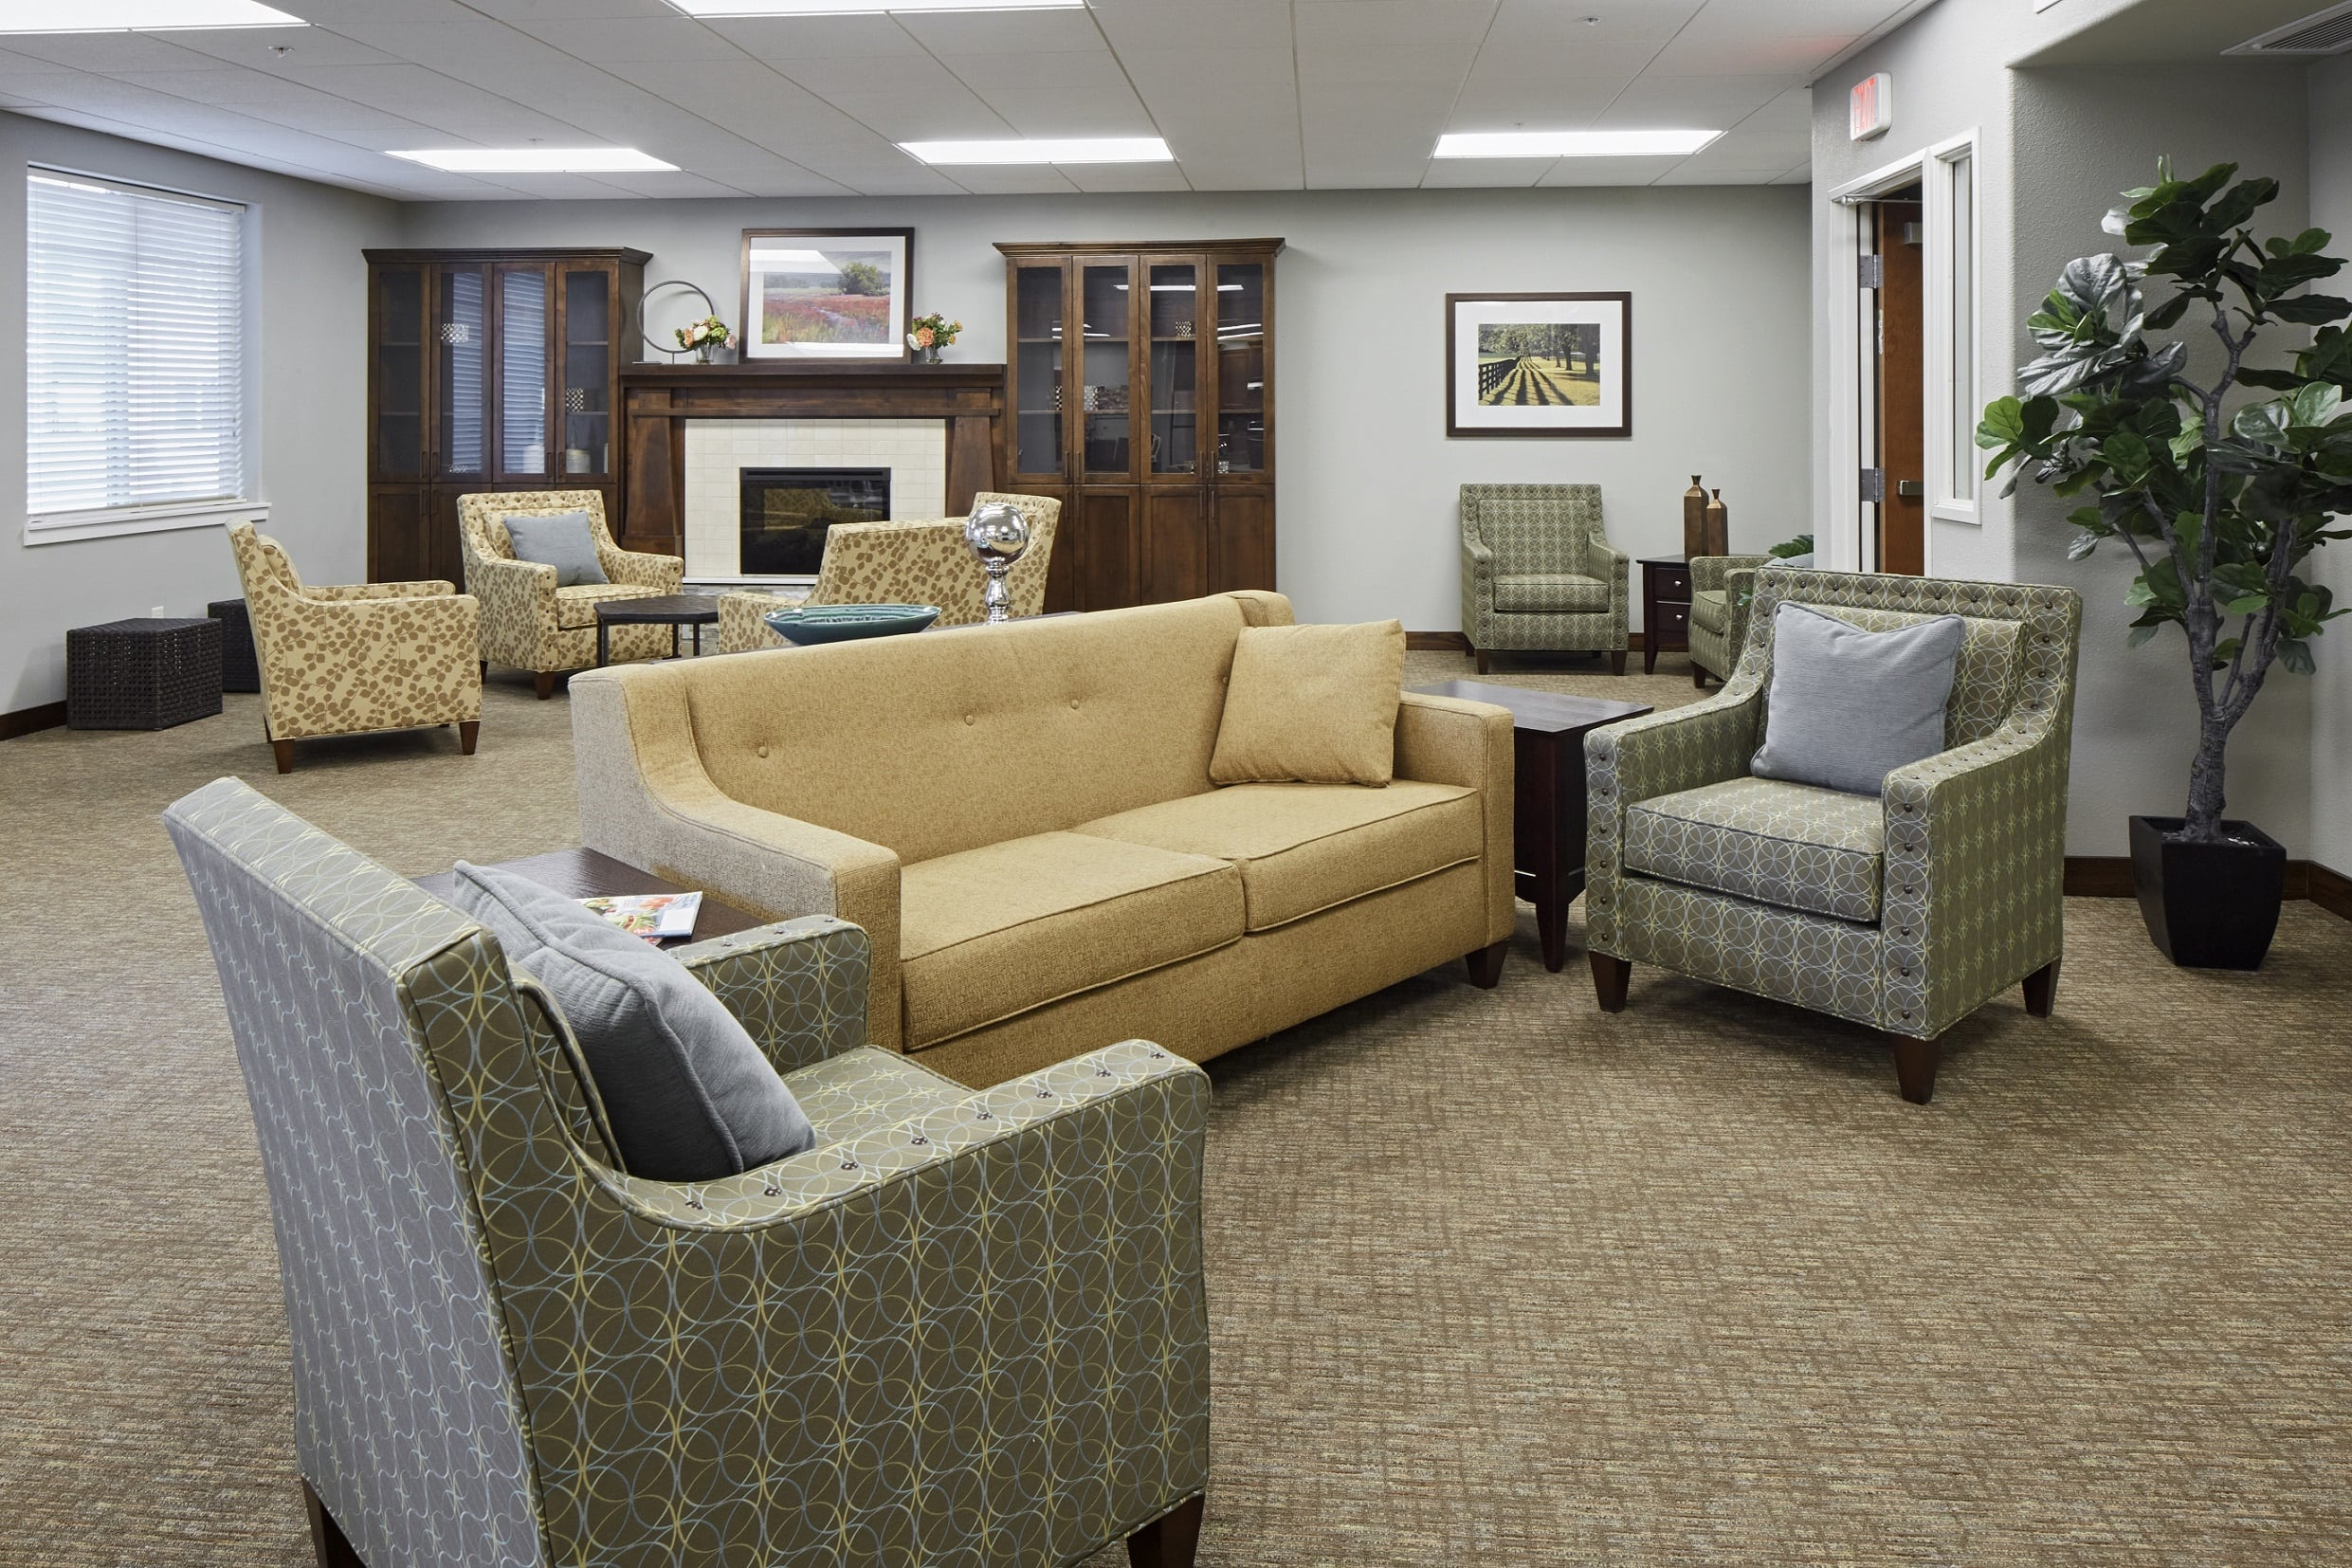 Enjoy a quiet afternoon in our senior living community in Medford, OR